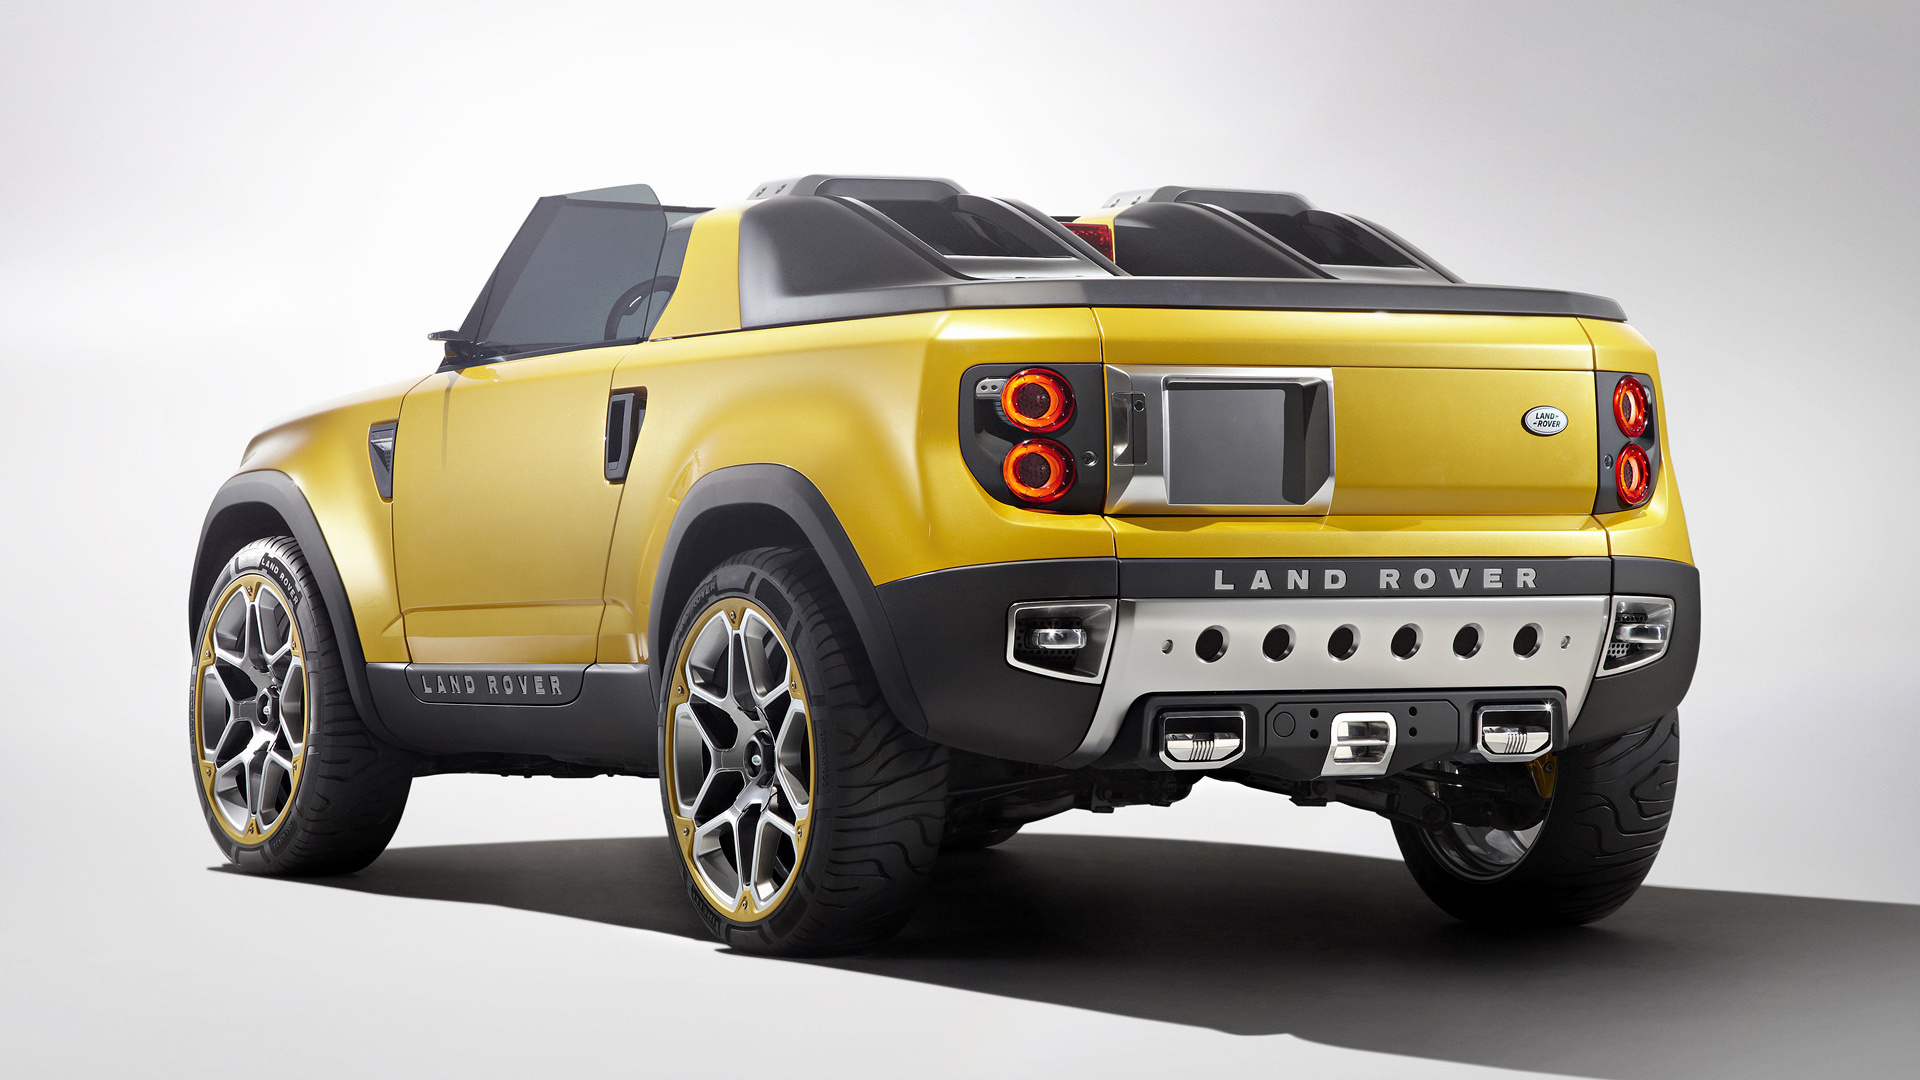 Land Rover DC100 Sport Concept (2011) Wallpapers and HD Images - Car ...